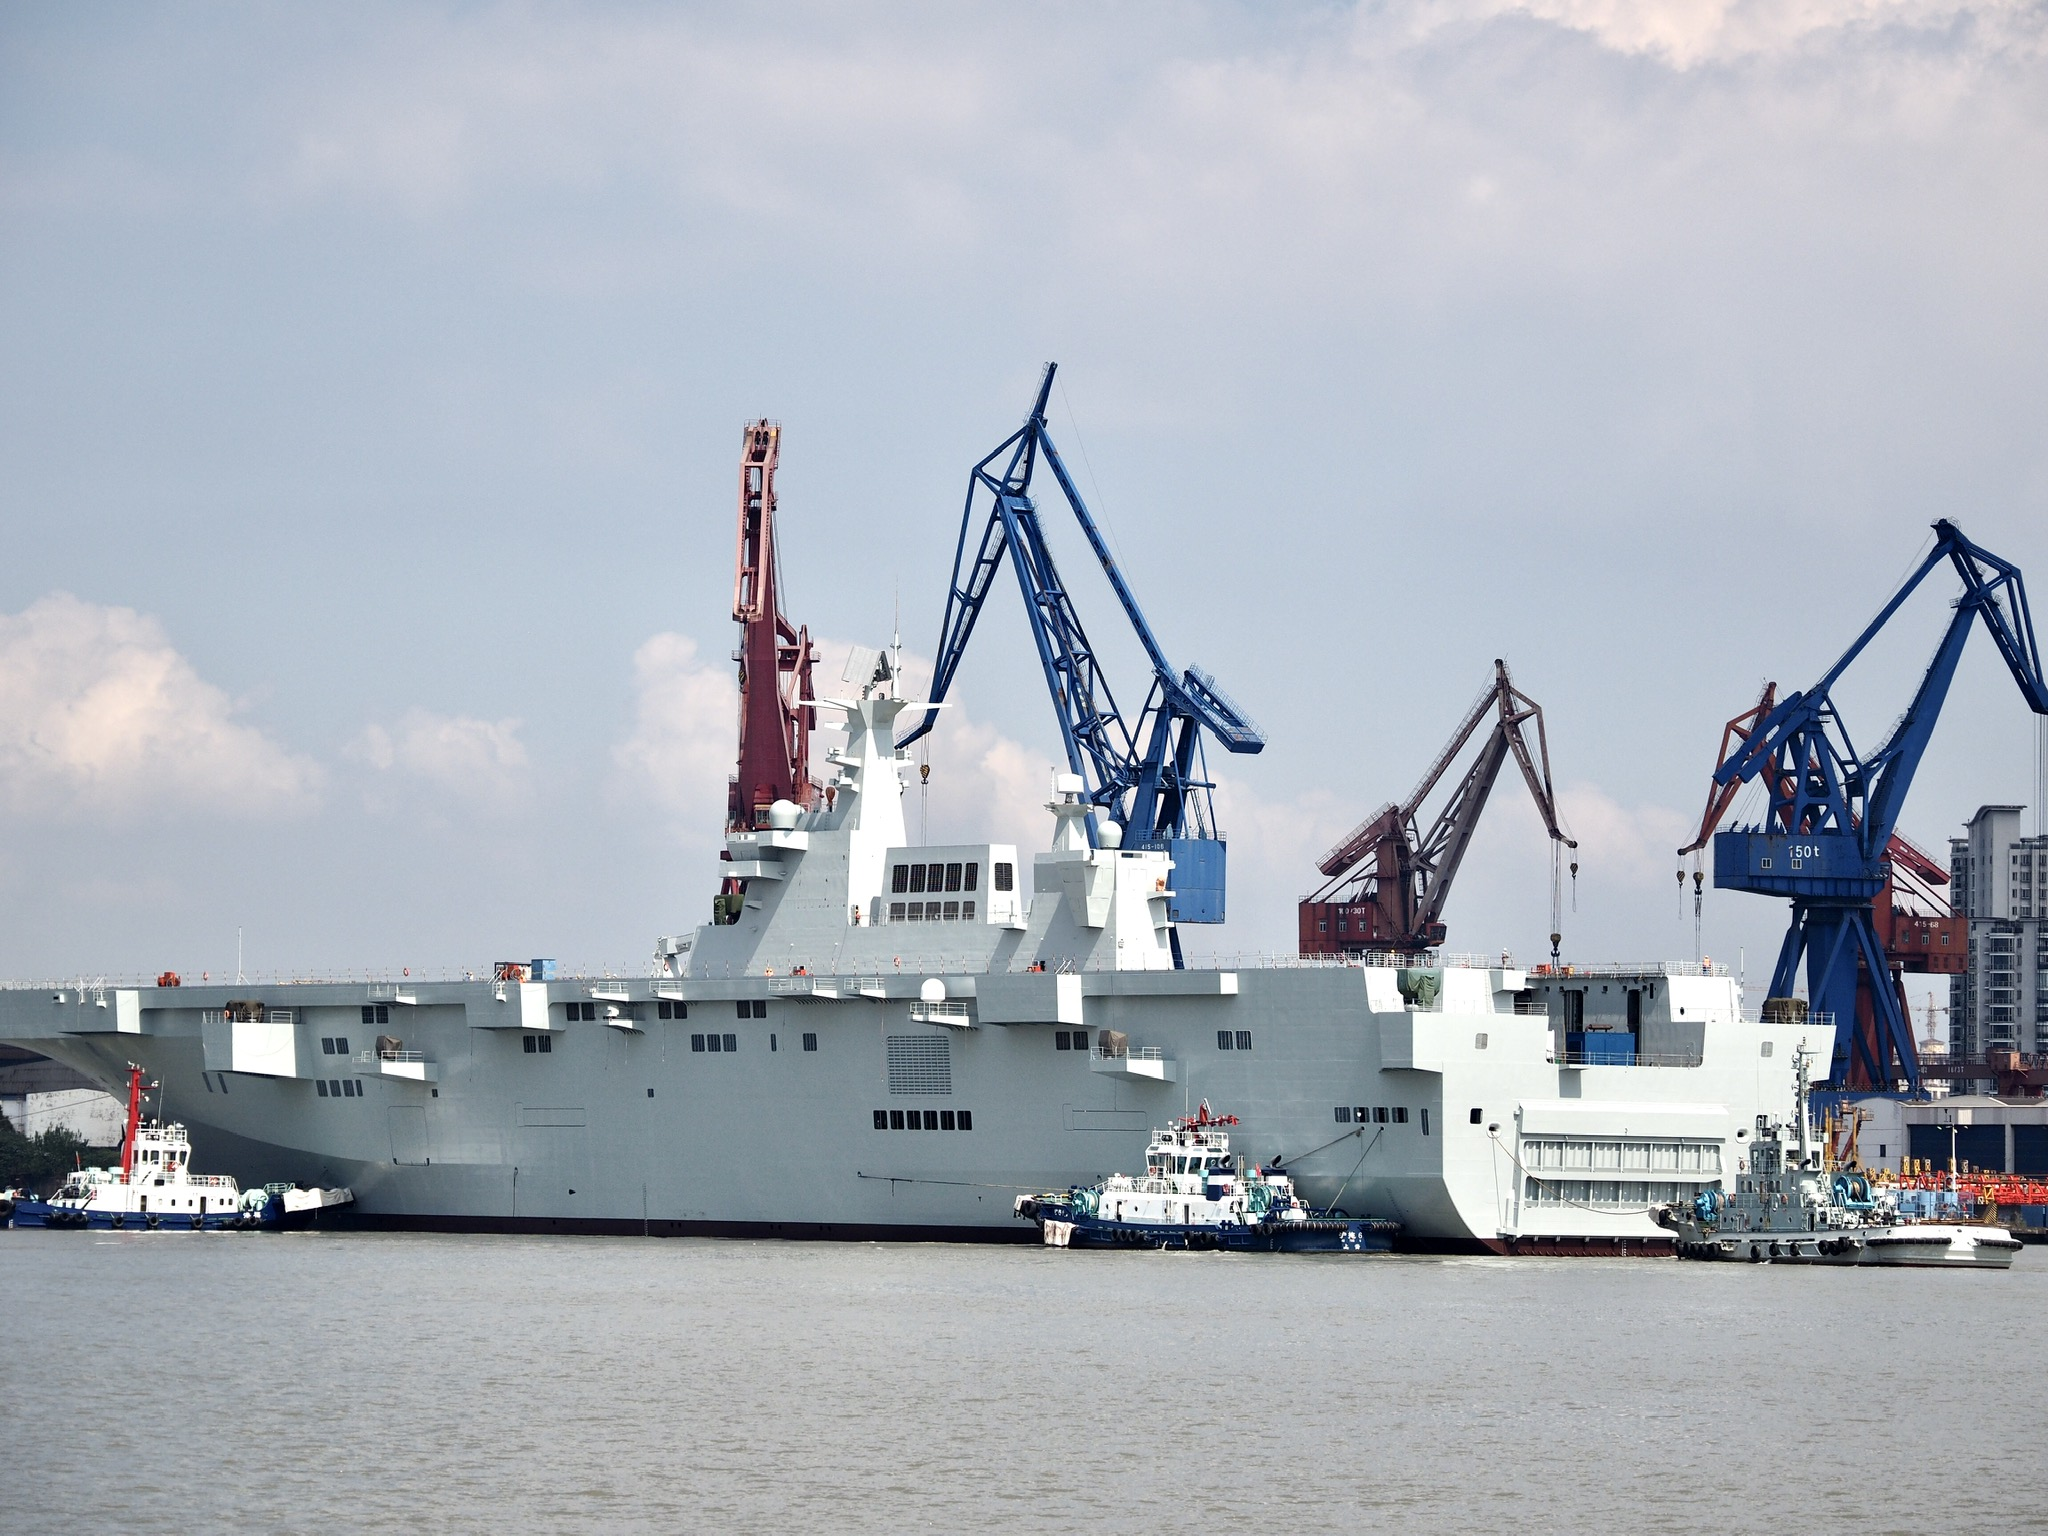 Type 075 landing helicopter dock (LHD) 48802986143_2148d4fdd9_o